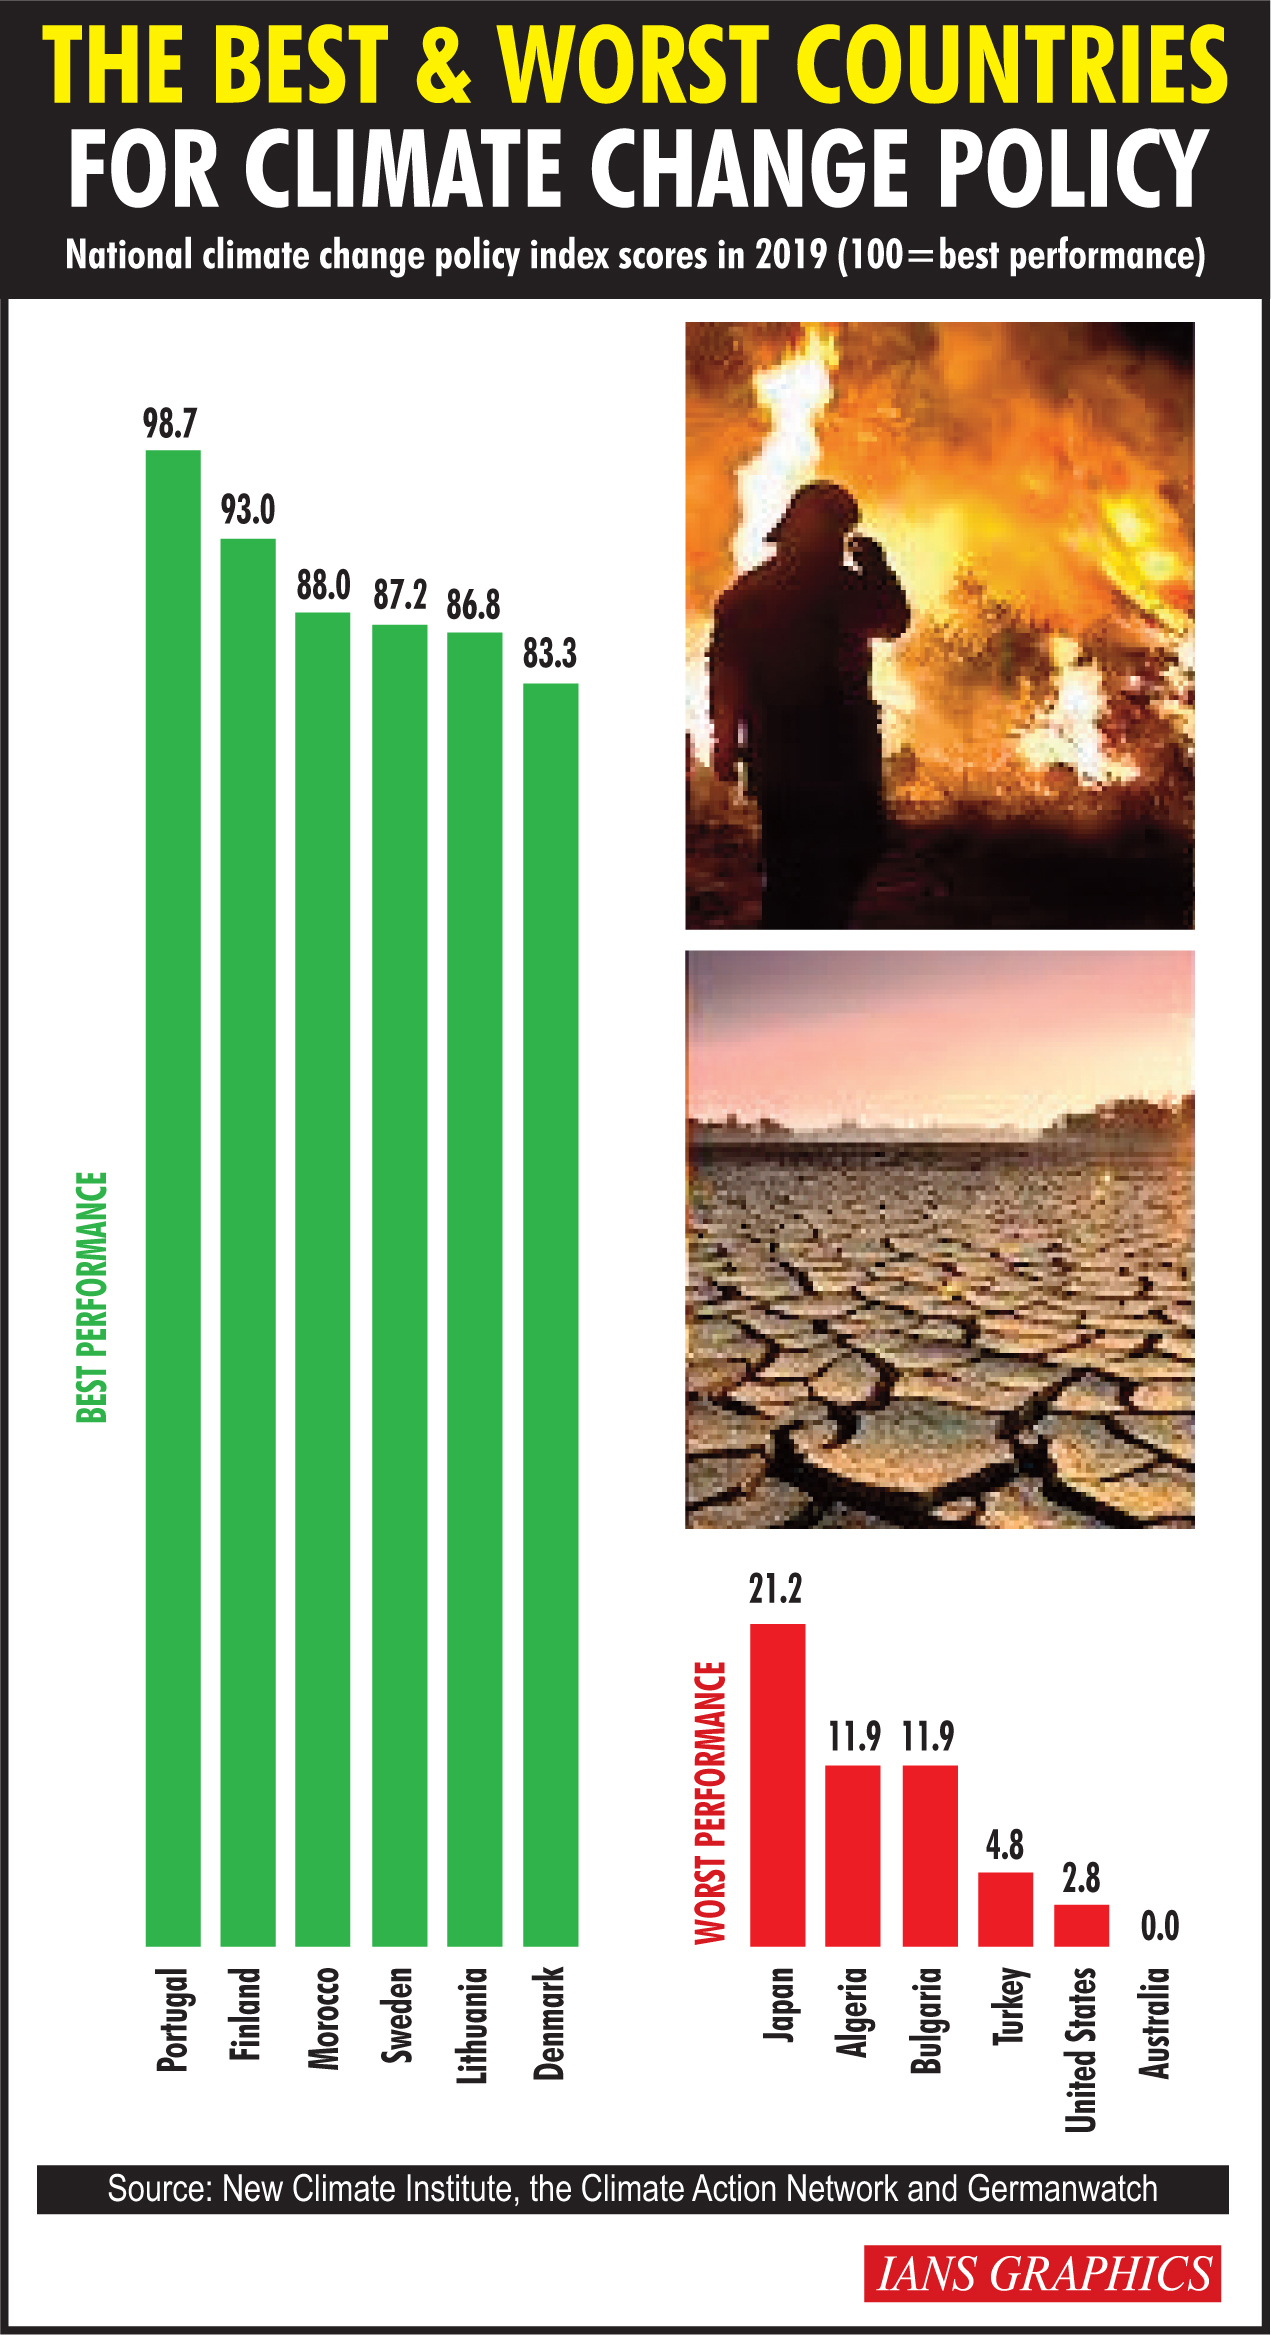 The best and worst countries for climate change policy. (IANS Infographics)